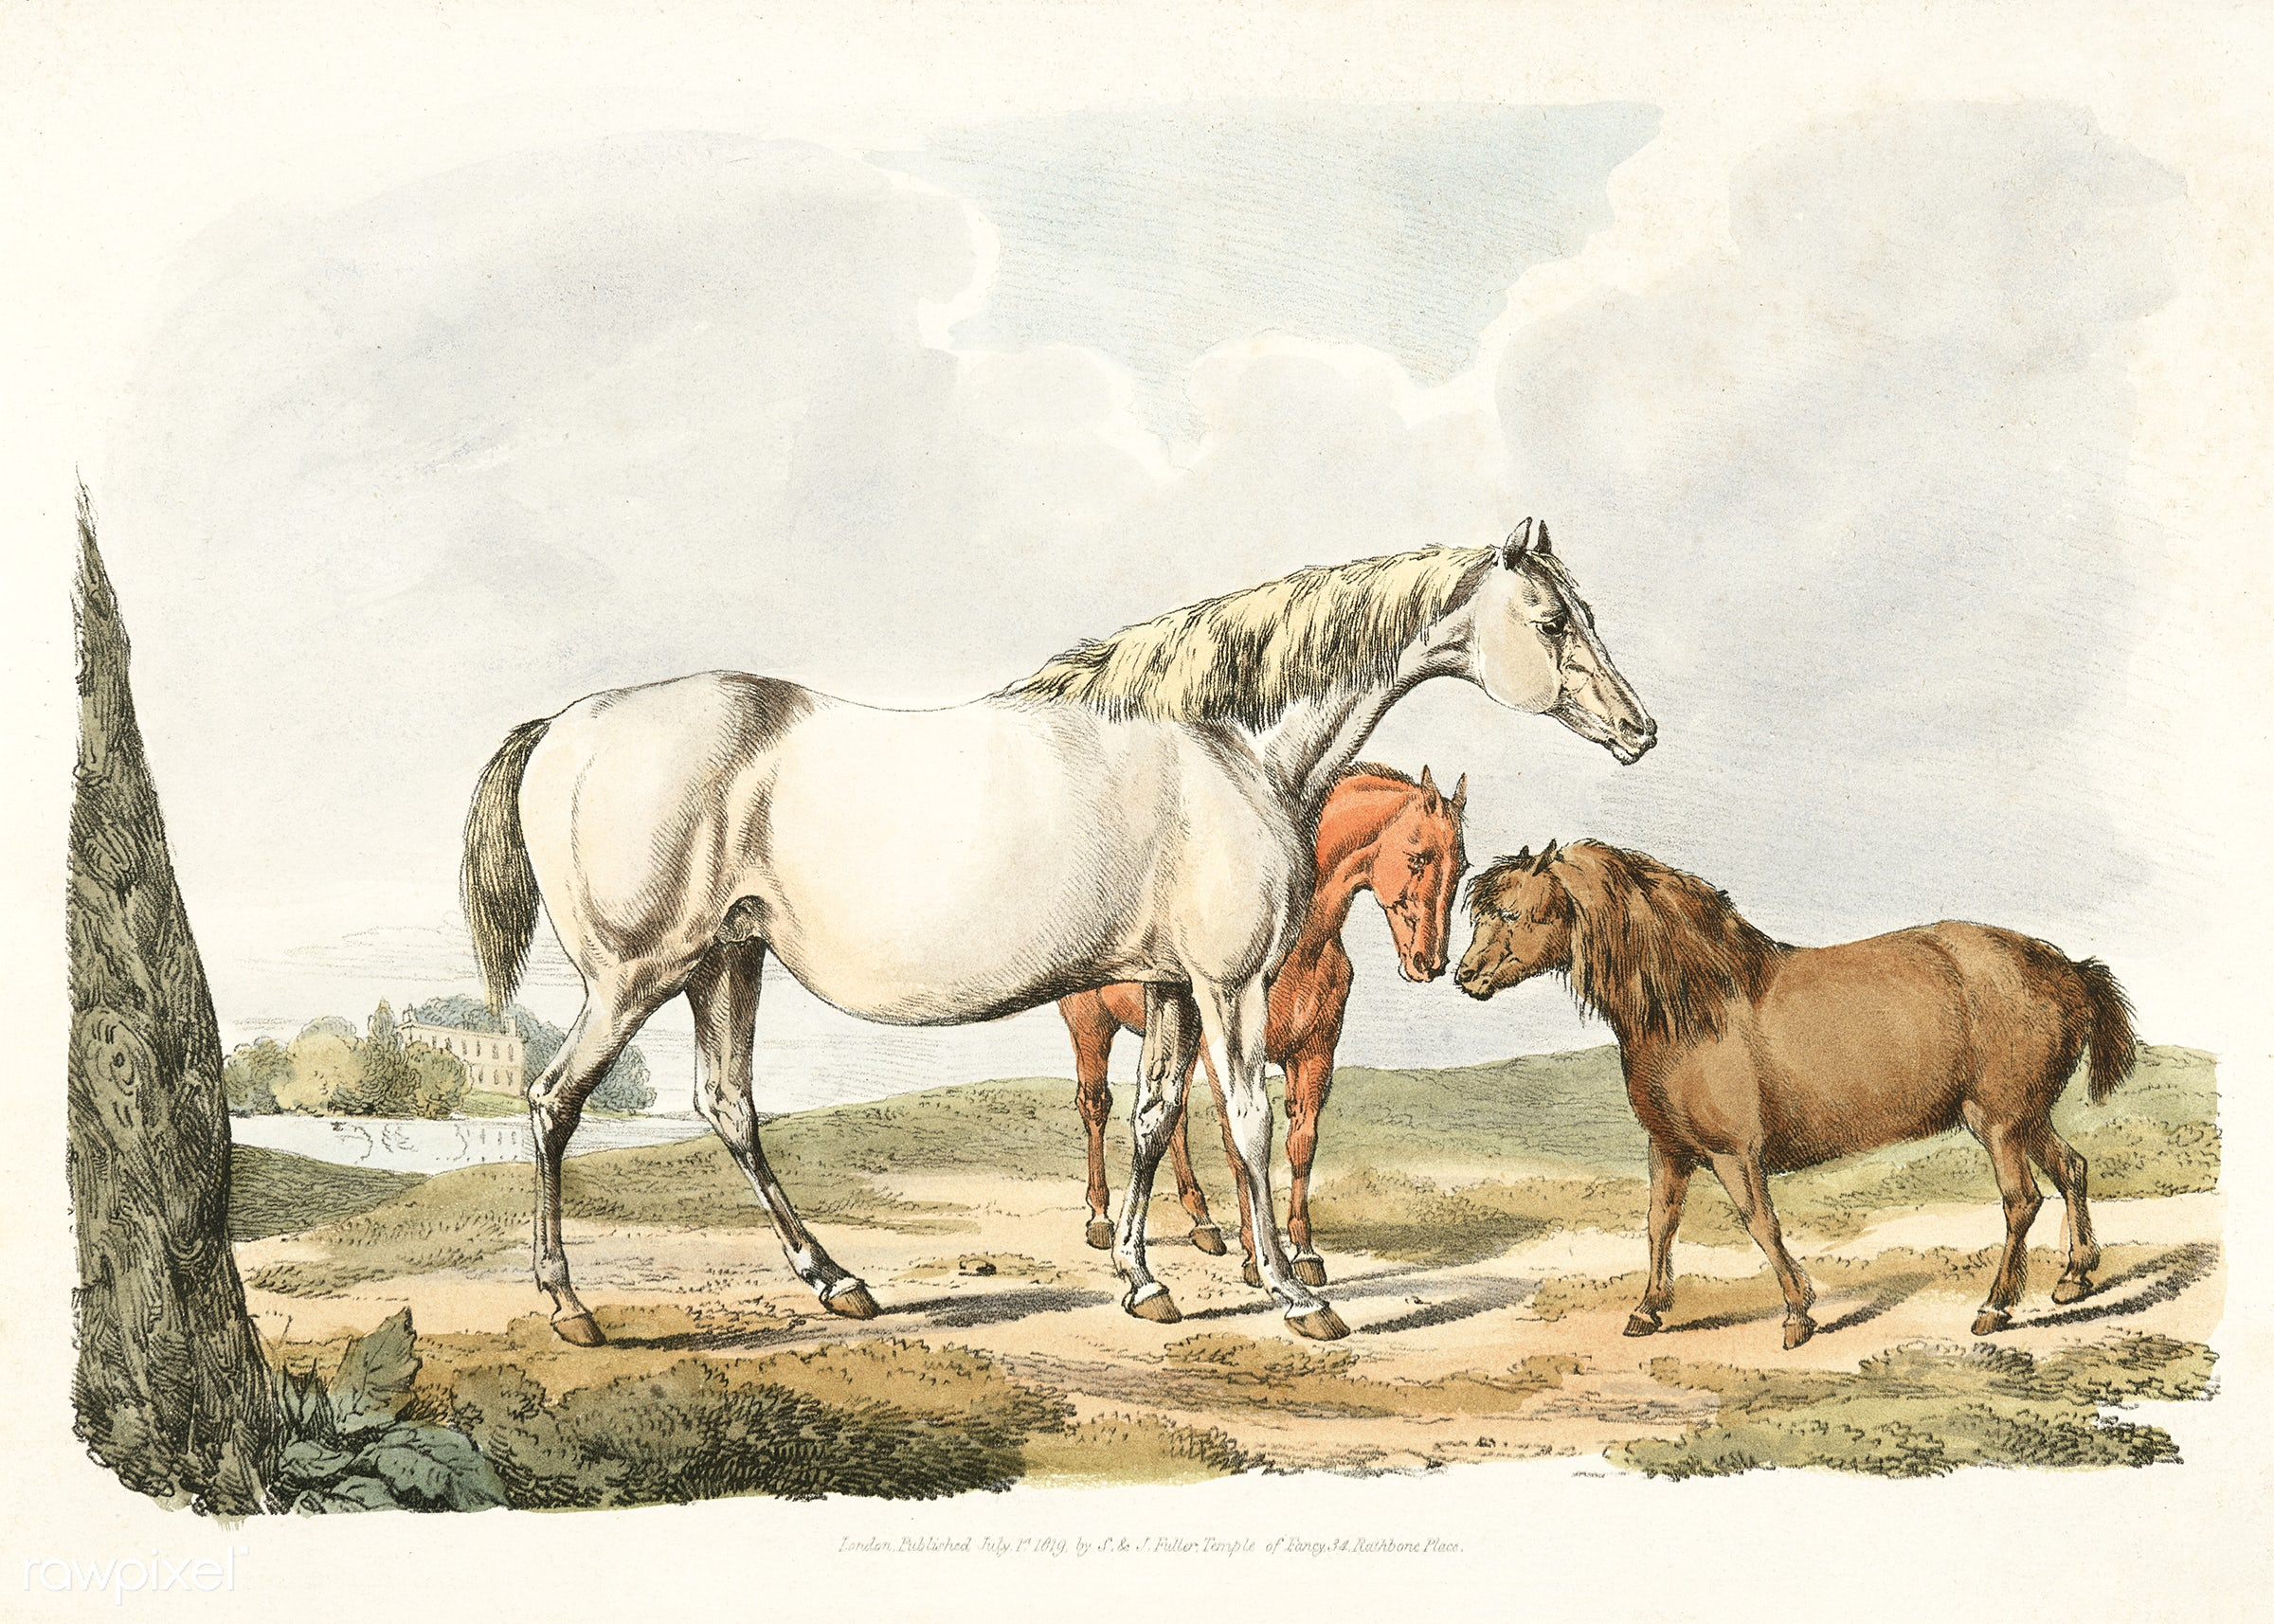 Illustration of two horses and a pony from Sporting Sketches (1817-1818) by Henry Alken (1784-1851). - animal, antique, cc0...